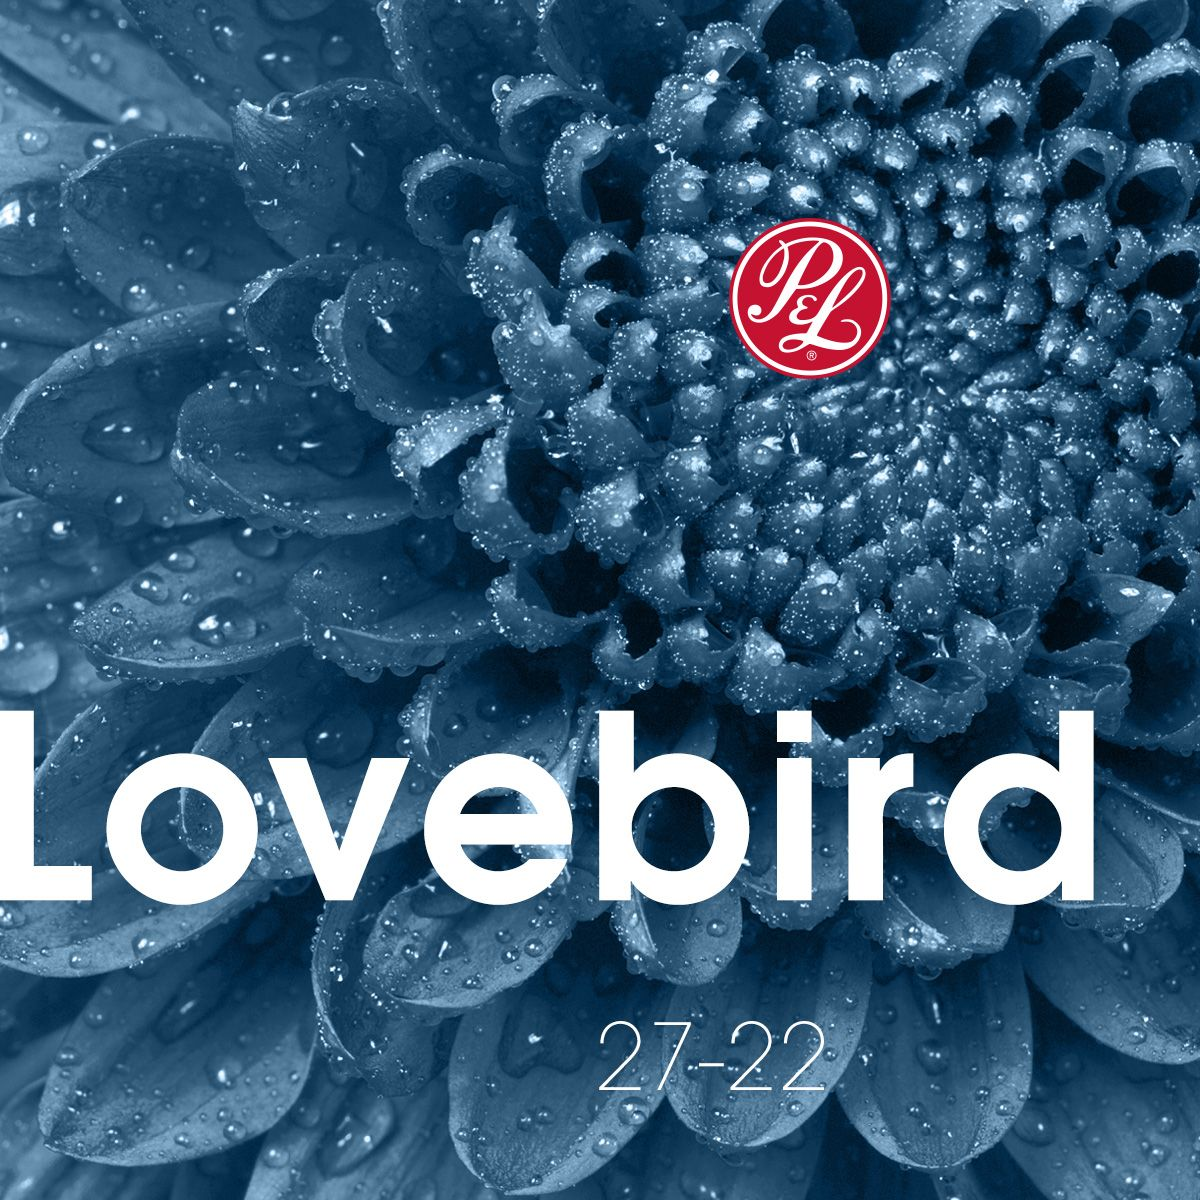 Lovebird's gray-blue hue echoes dependability, loyalty and calmness, imbuing rooms with a sense of harmony.